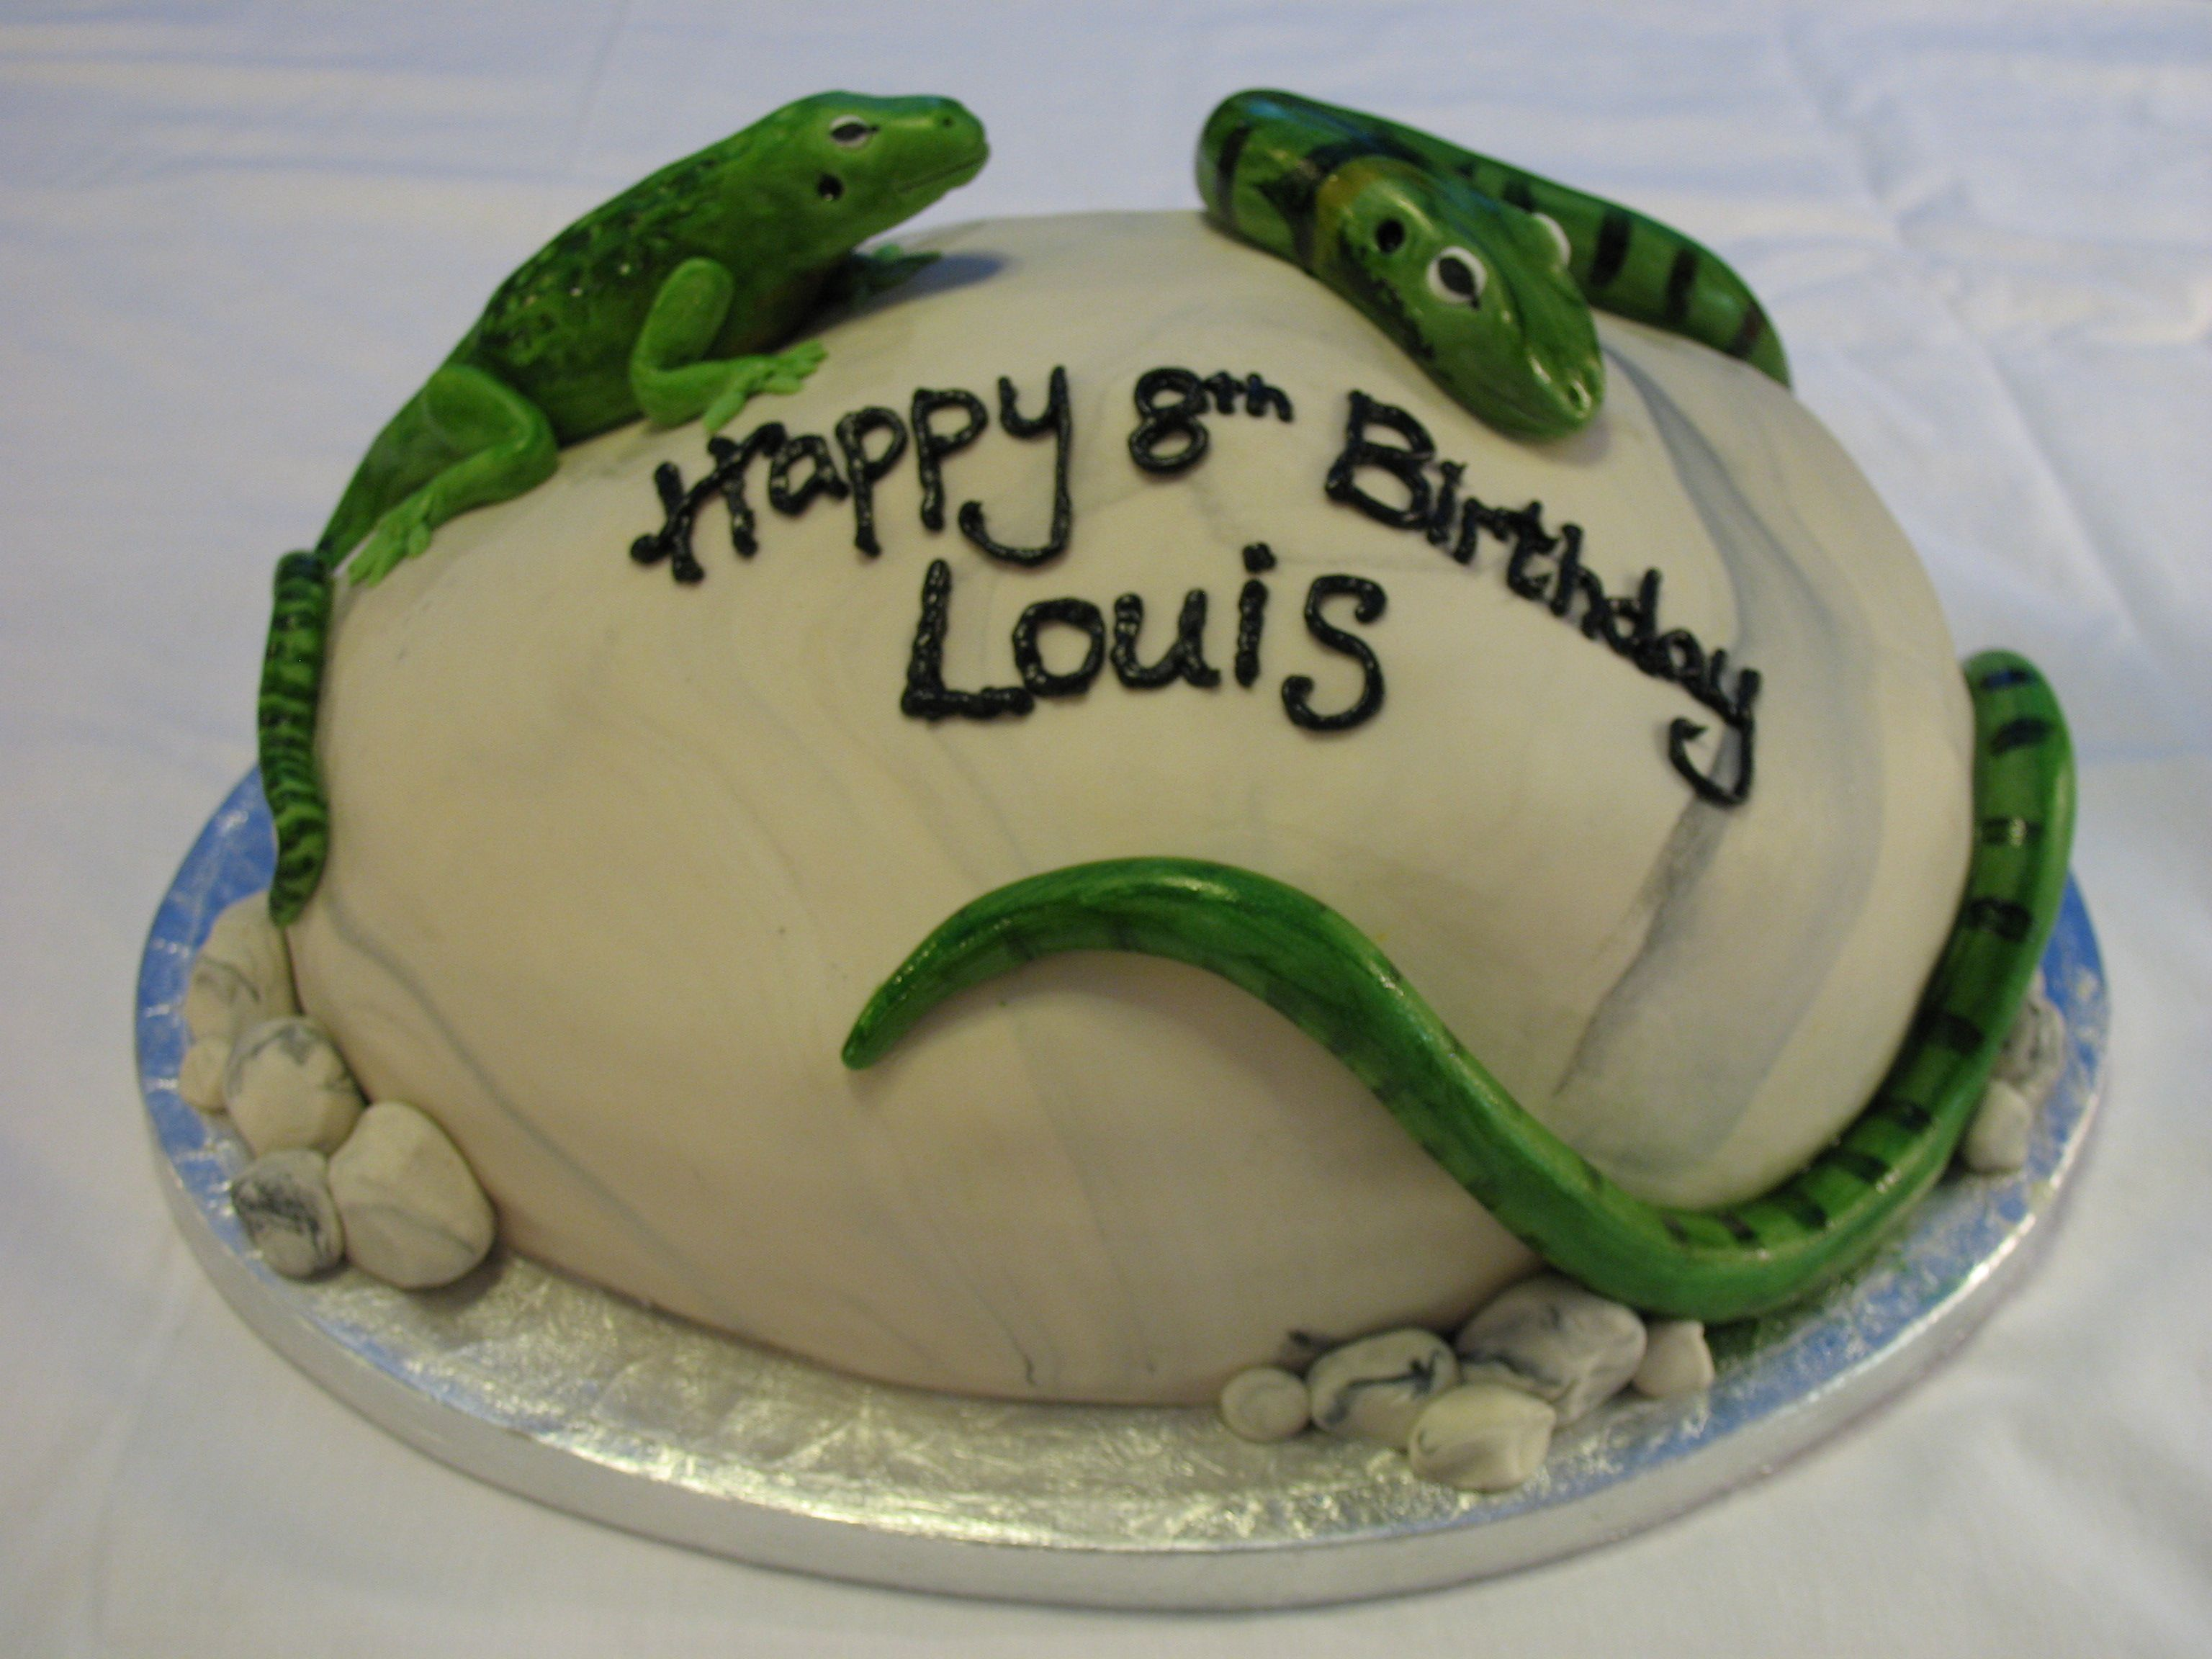 Idea For A Fun Kids Birthday Cake That Isnt One But Cupcakes